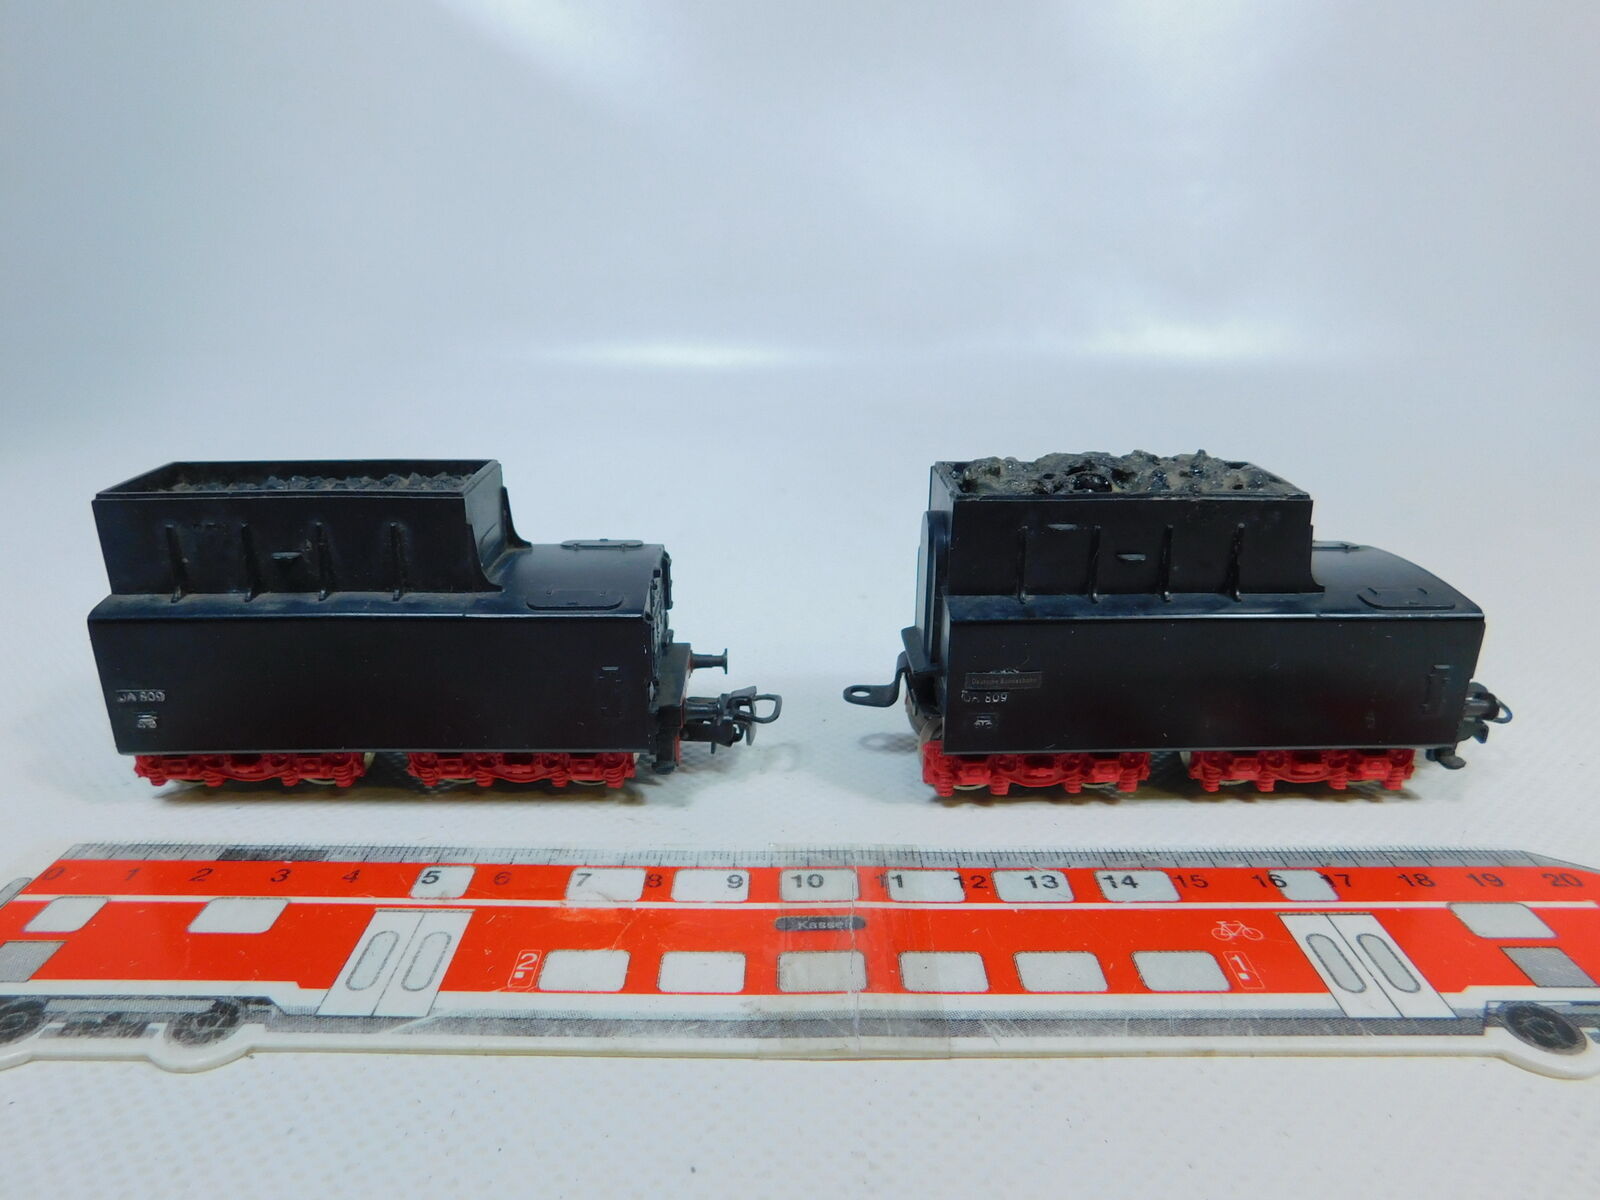 CA1-0, 5x Märklin H0 AC TENDER DA 809 23 014 for DA 800 Steam Locomotive, 2. Choice